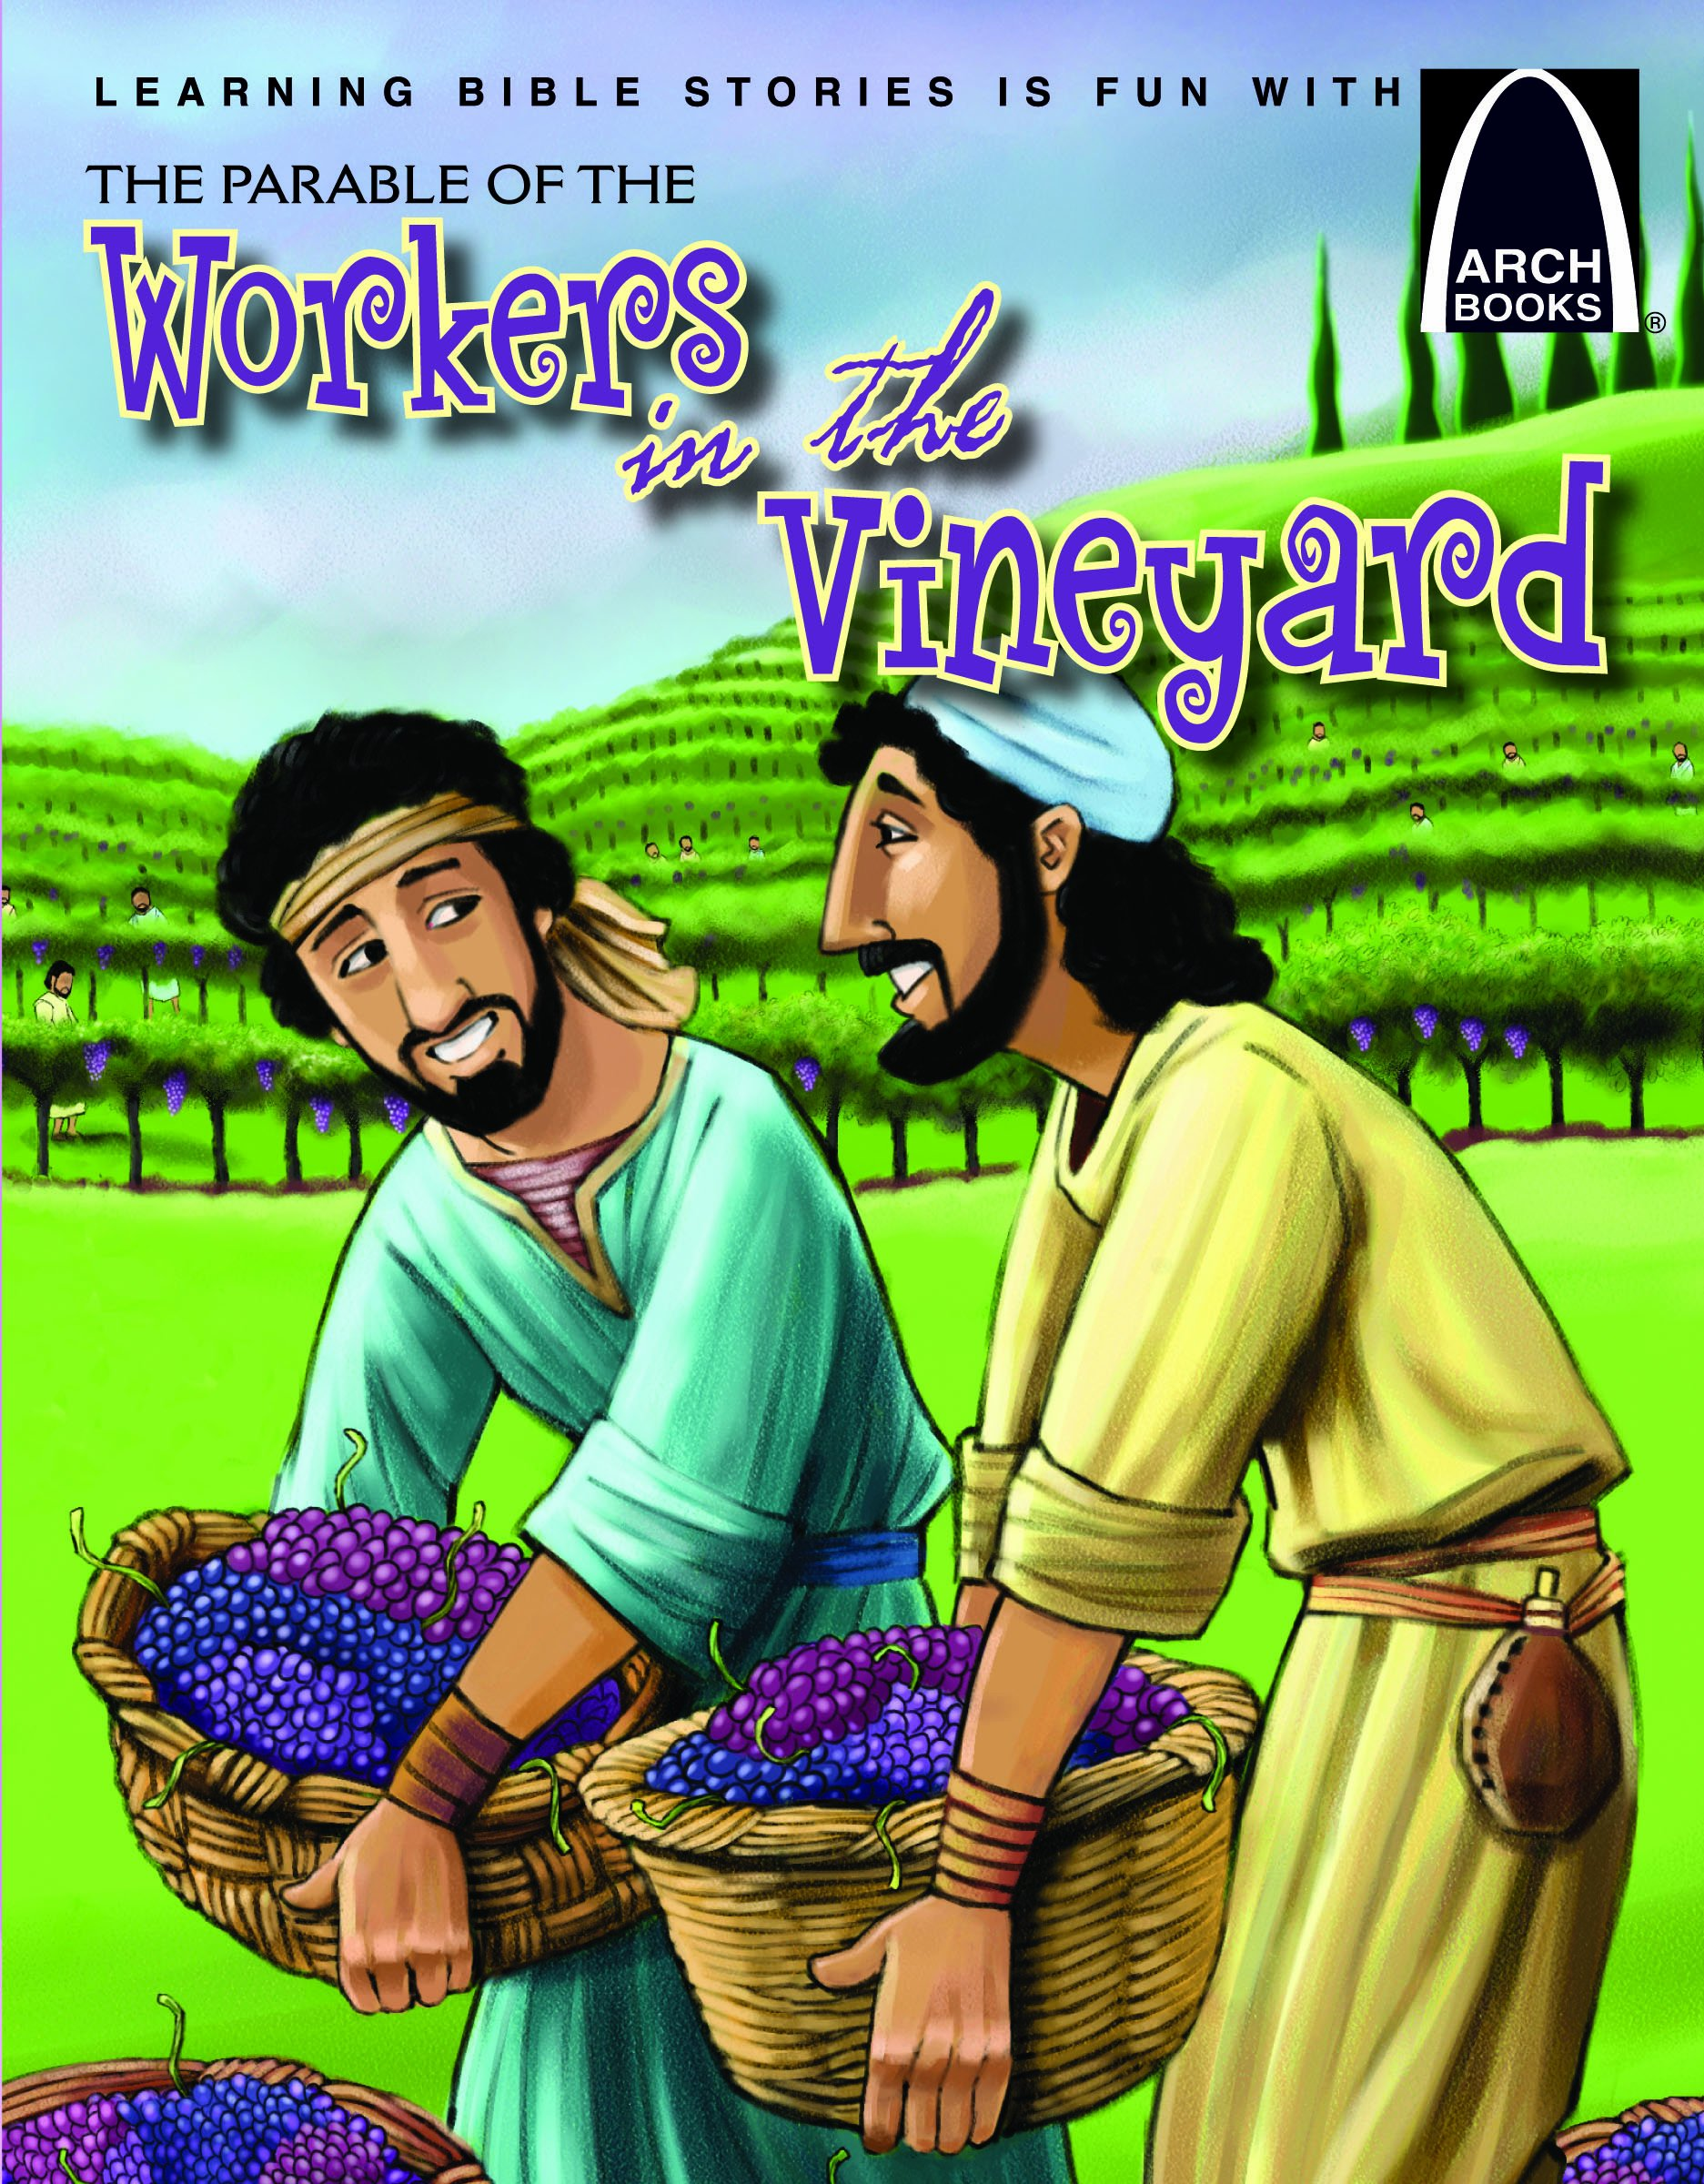 The Parable of the Workers in the Vineyard (Arch Books) pdf